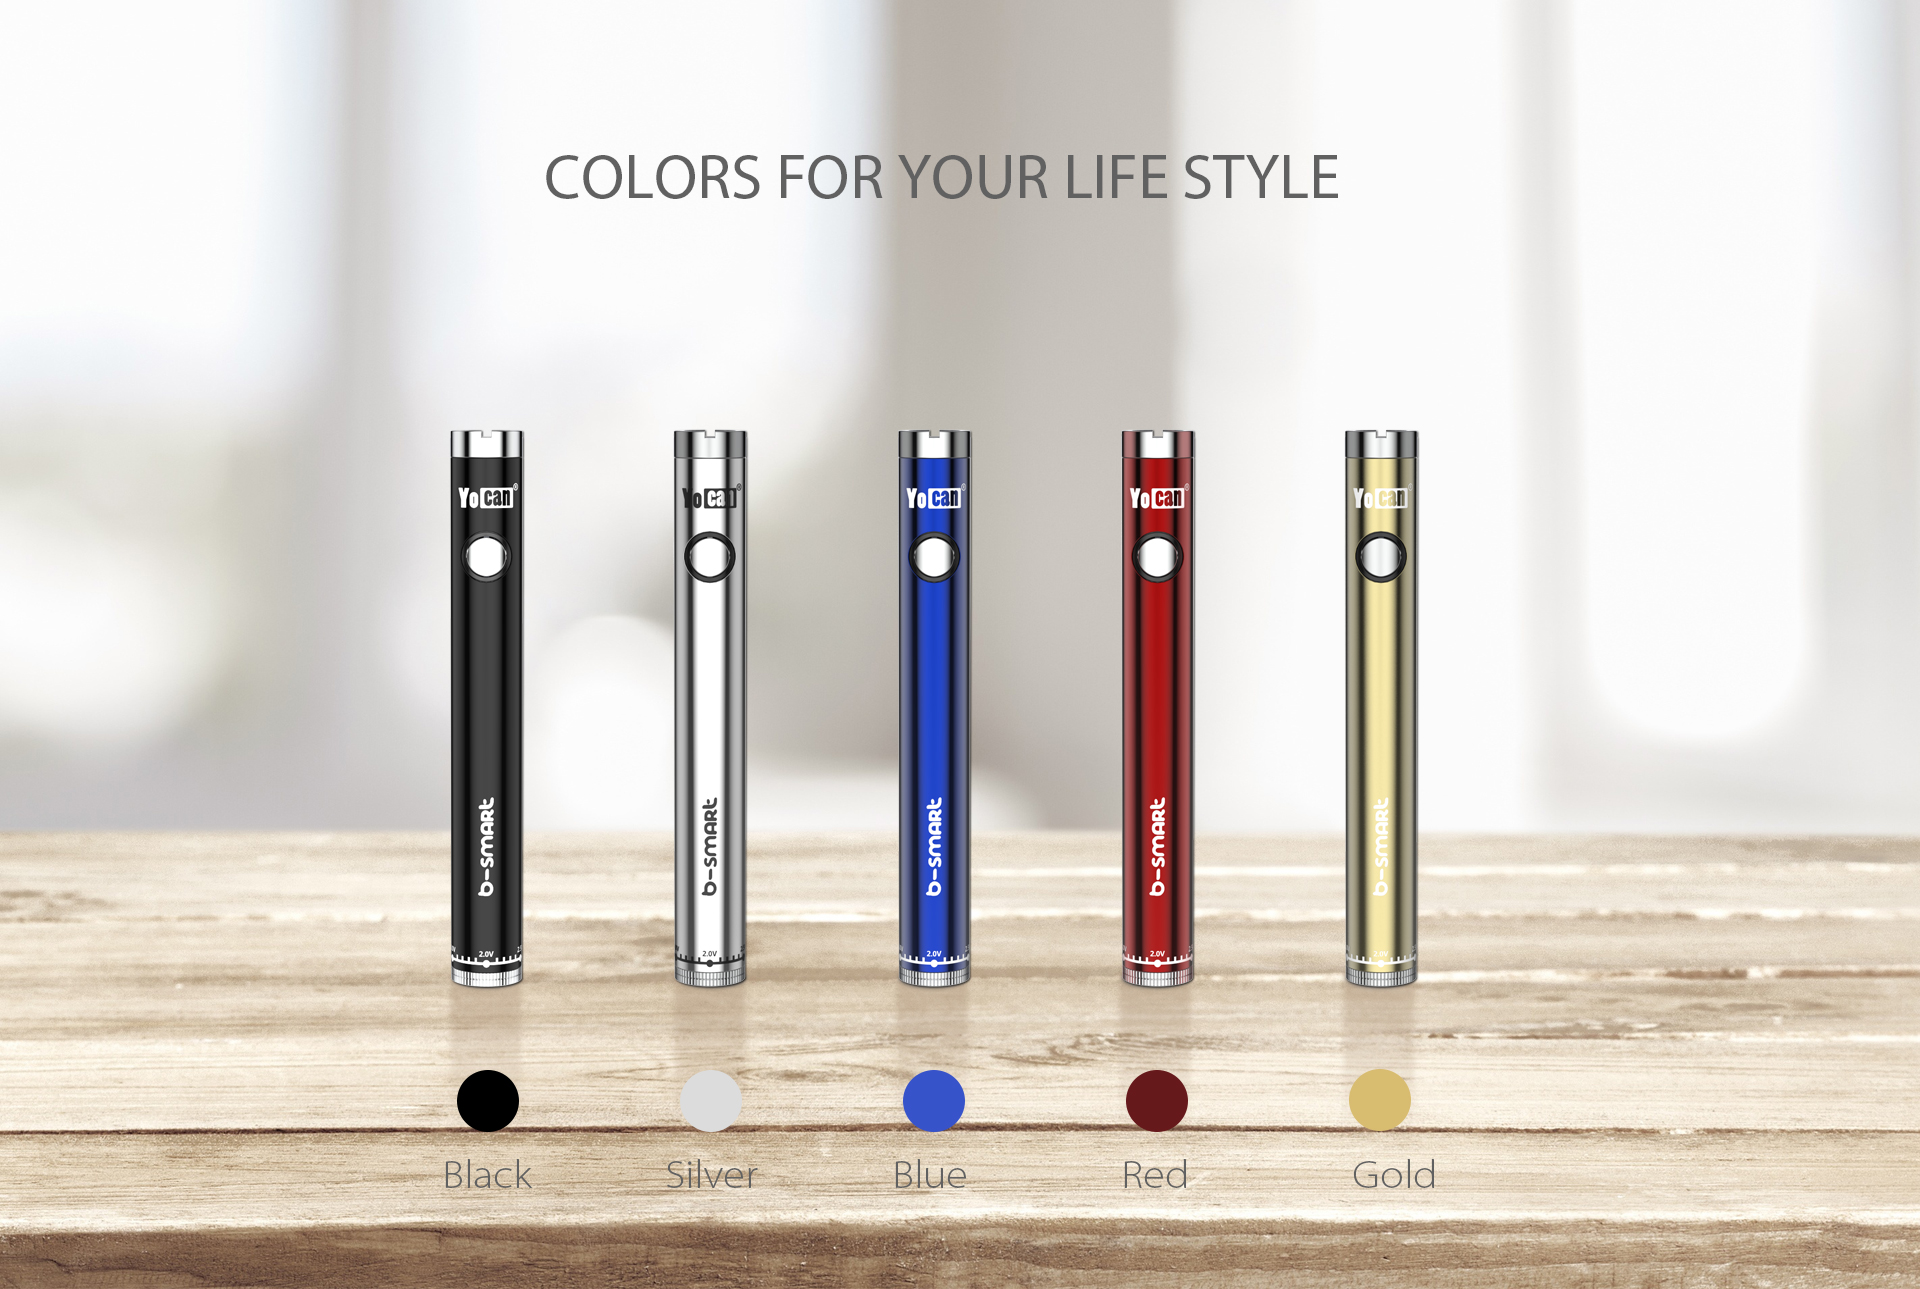 Yocan B-smart vape pen battery come with 5 colors.